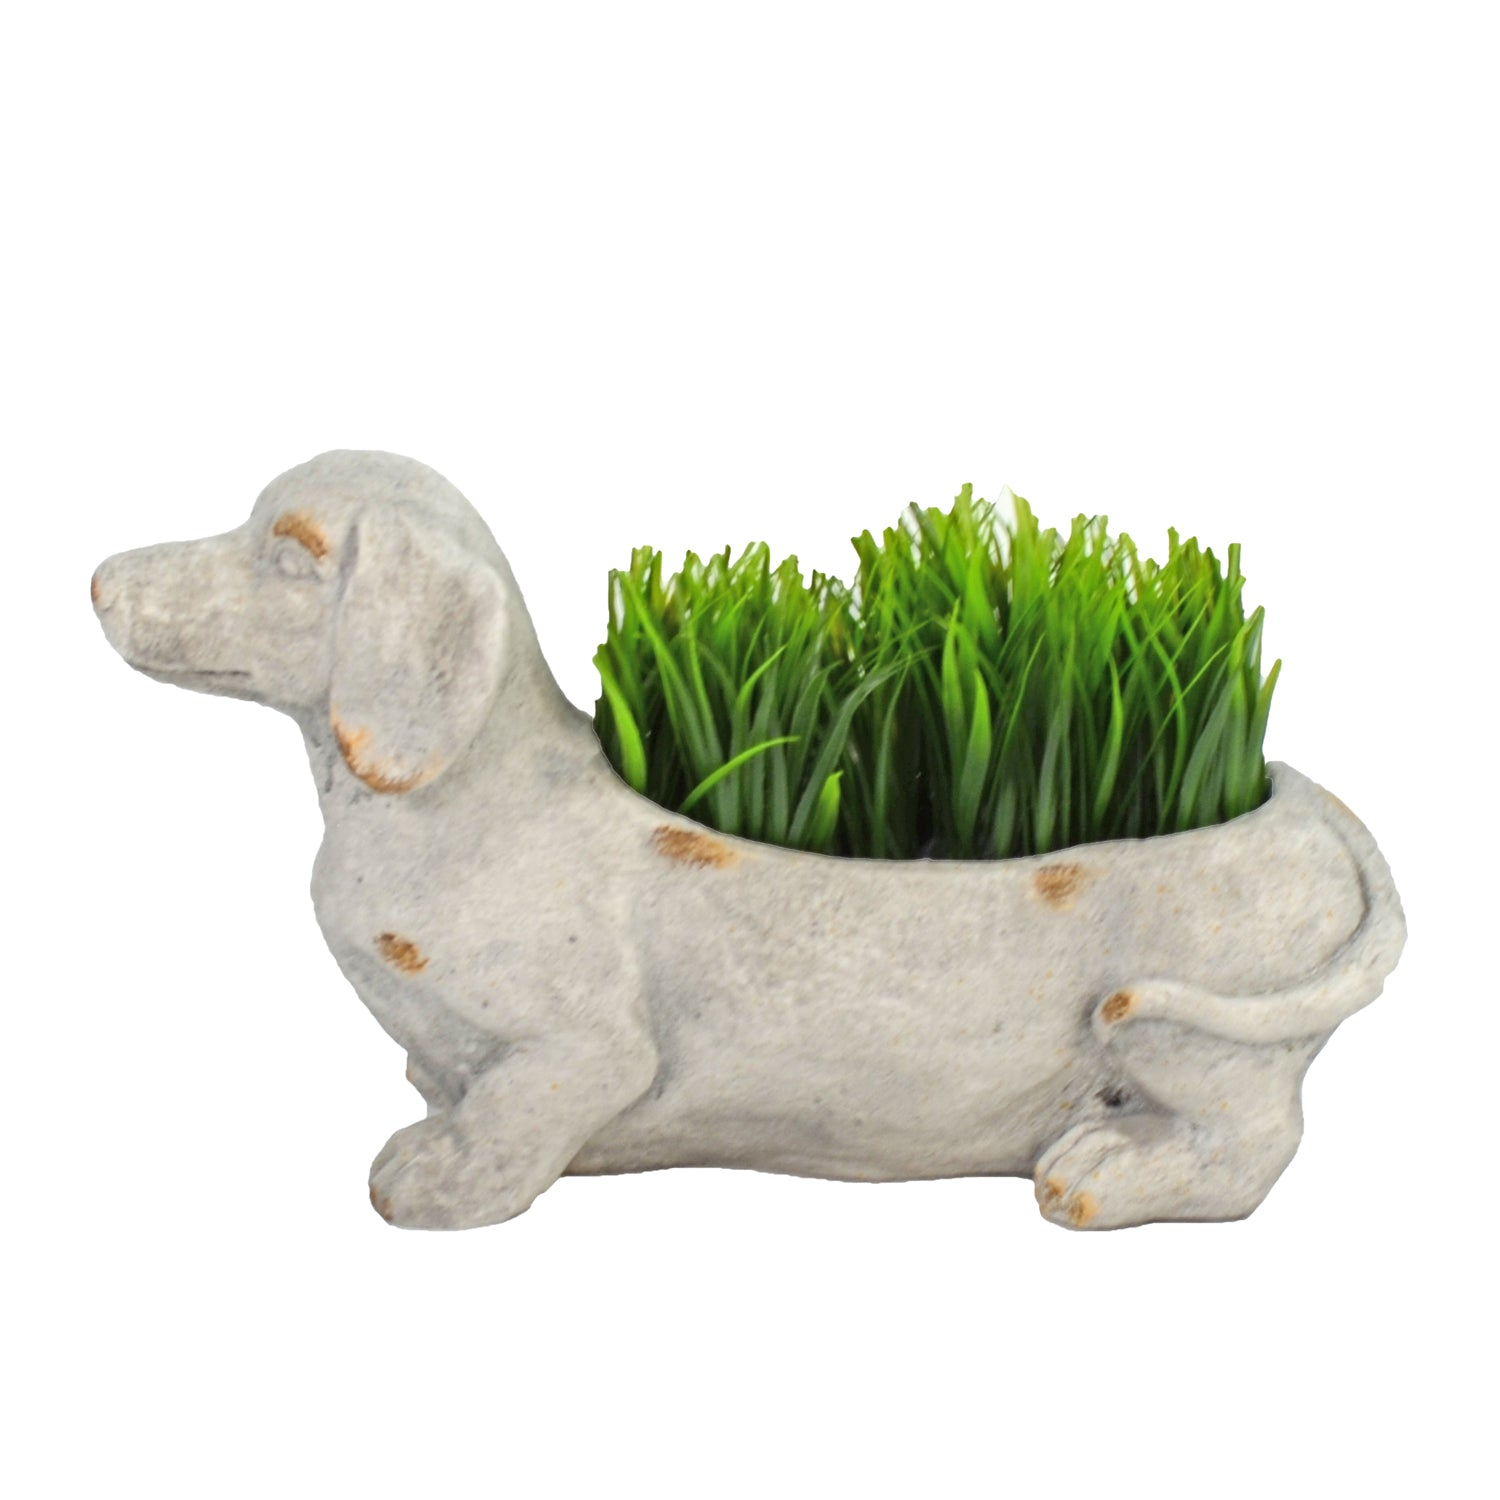 Solstice Sculptures Sausage Dog Planter 30cm Weathered Stone Effect - Ruby's Garden Boutique